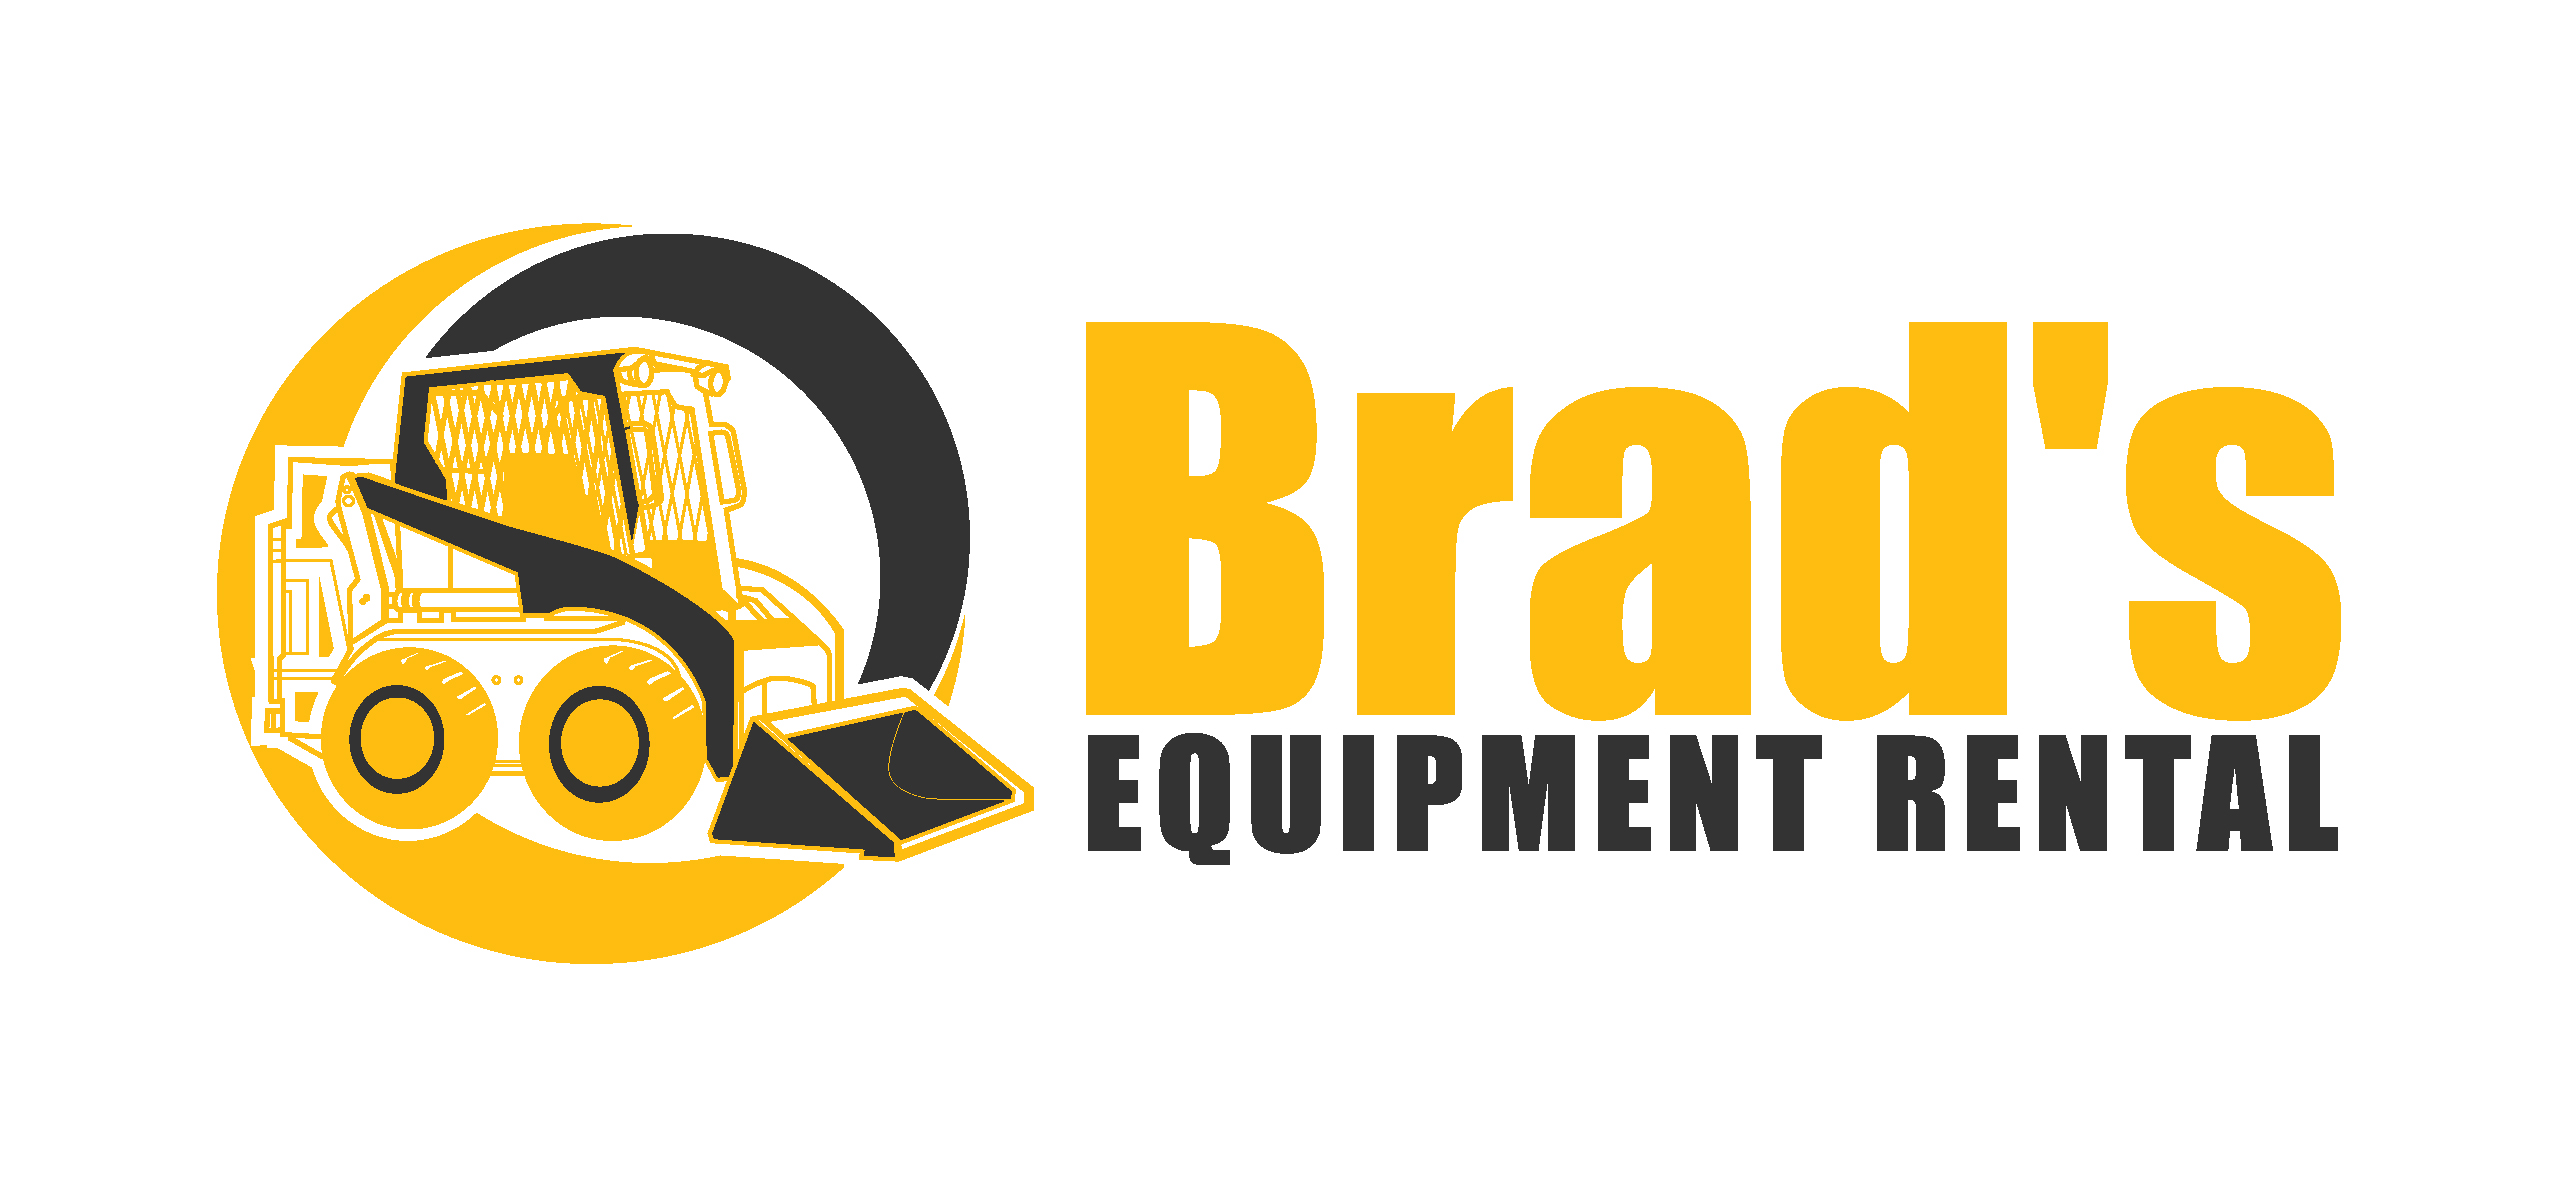 Brad's Equipment Rental